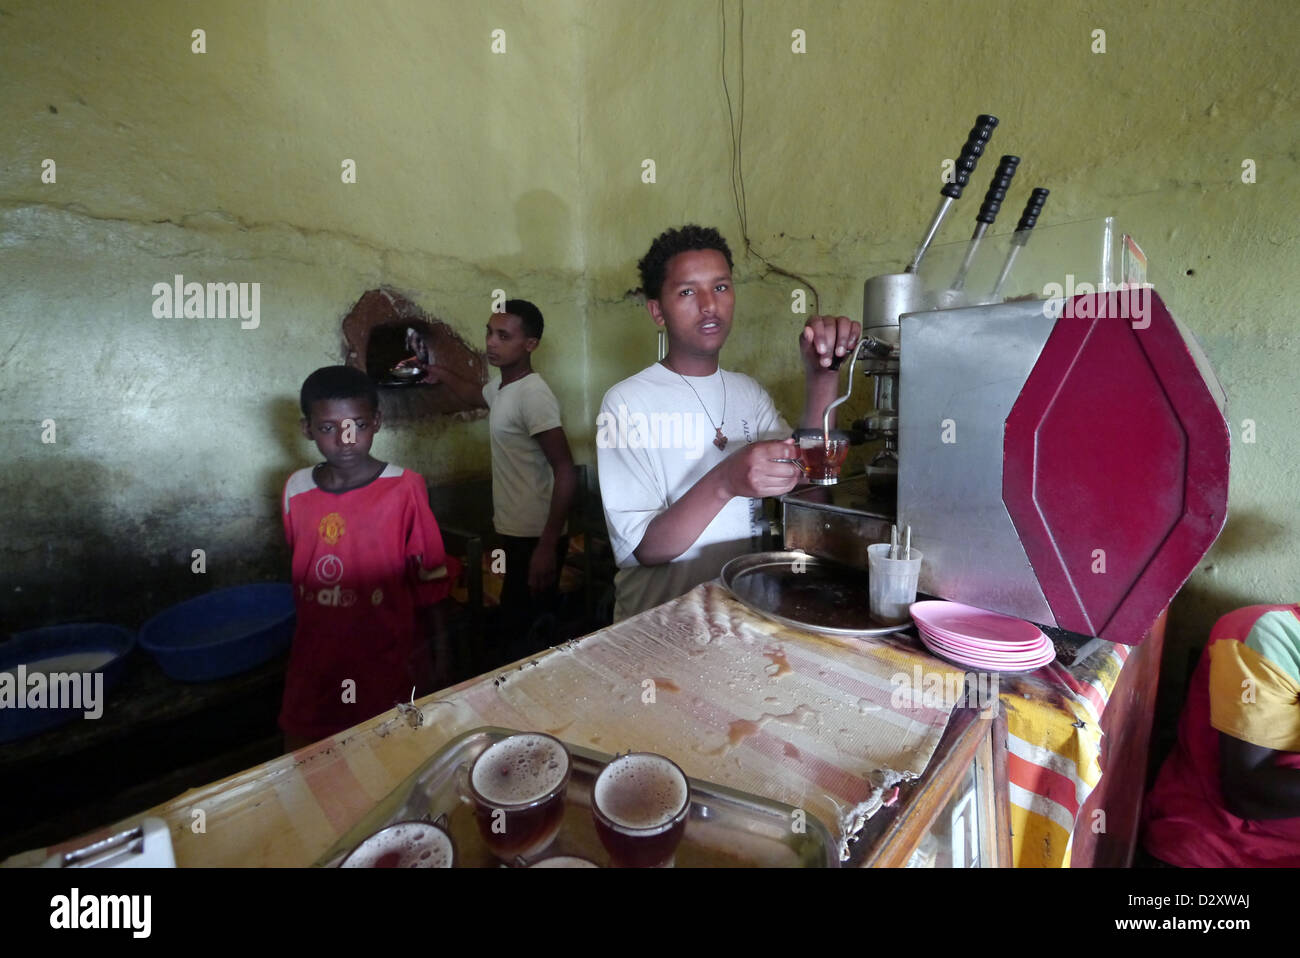 ethiopia salam cafe chagni beni shangul gumuz region employees espresso machine coffee labor food economy 2012 Stock Photo